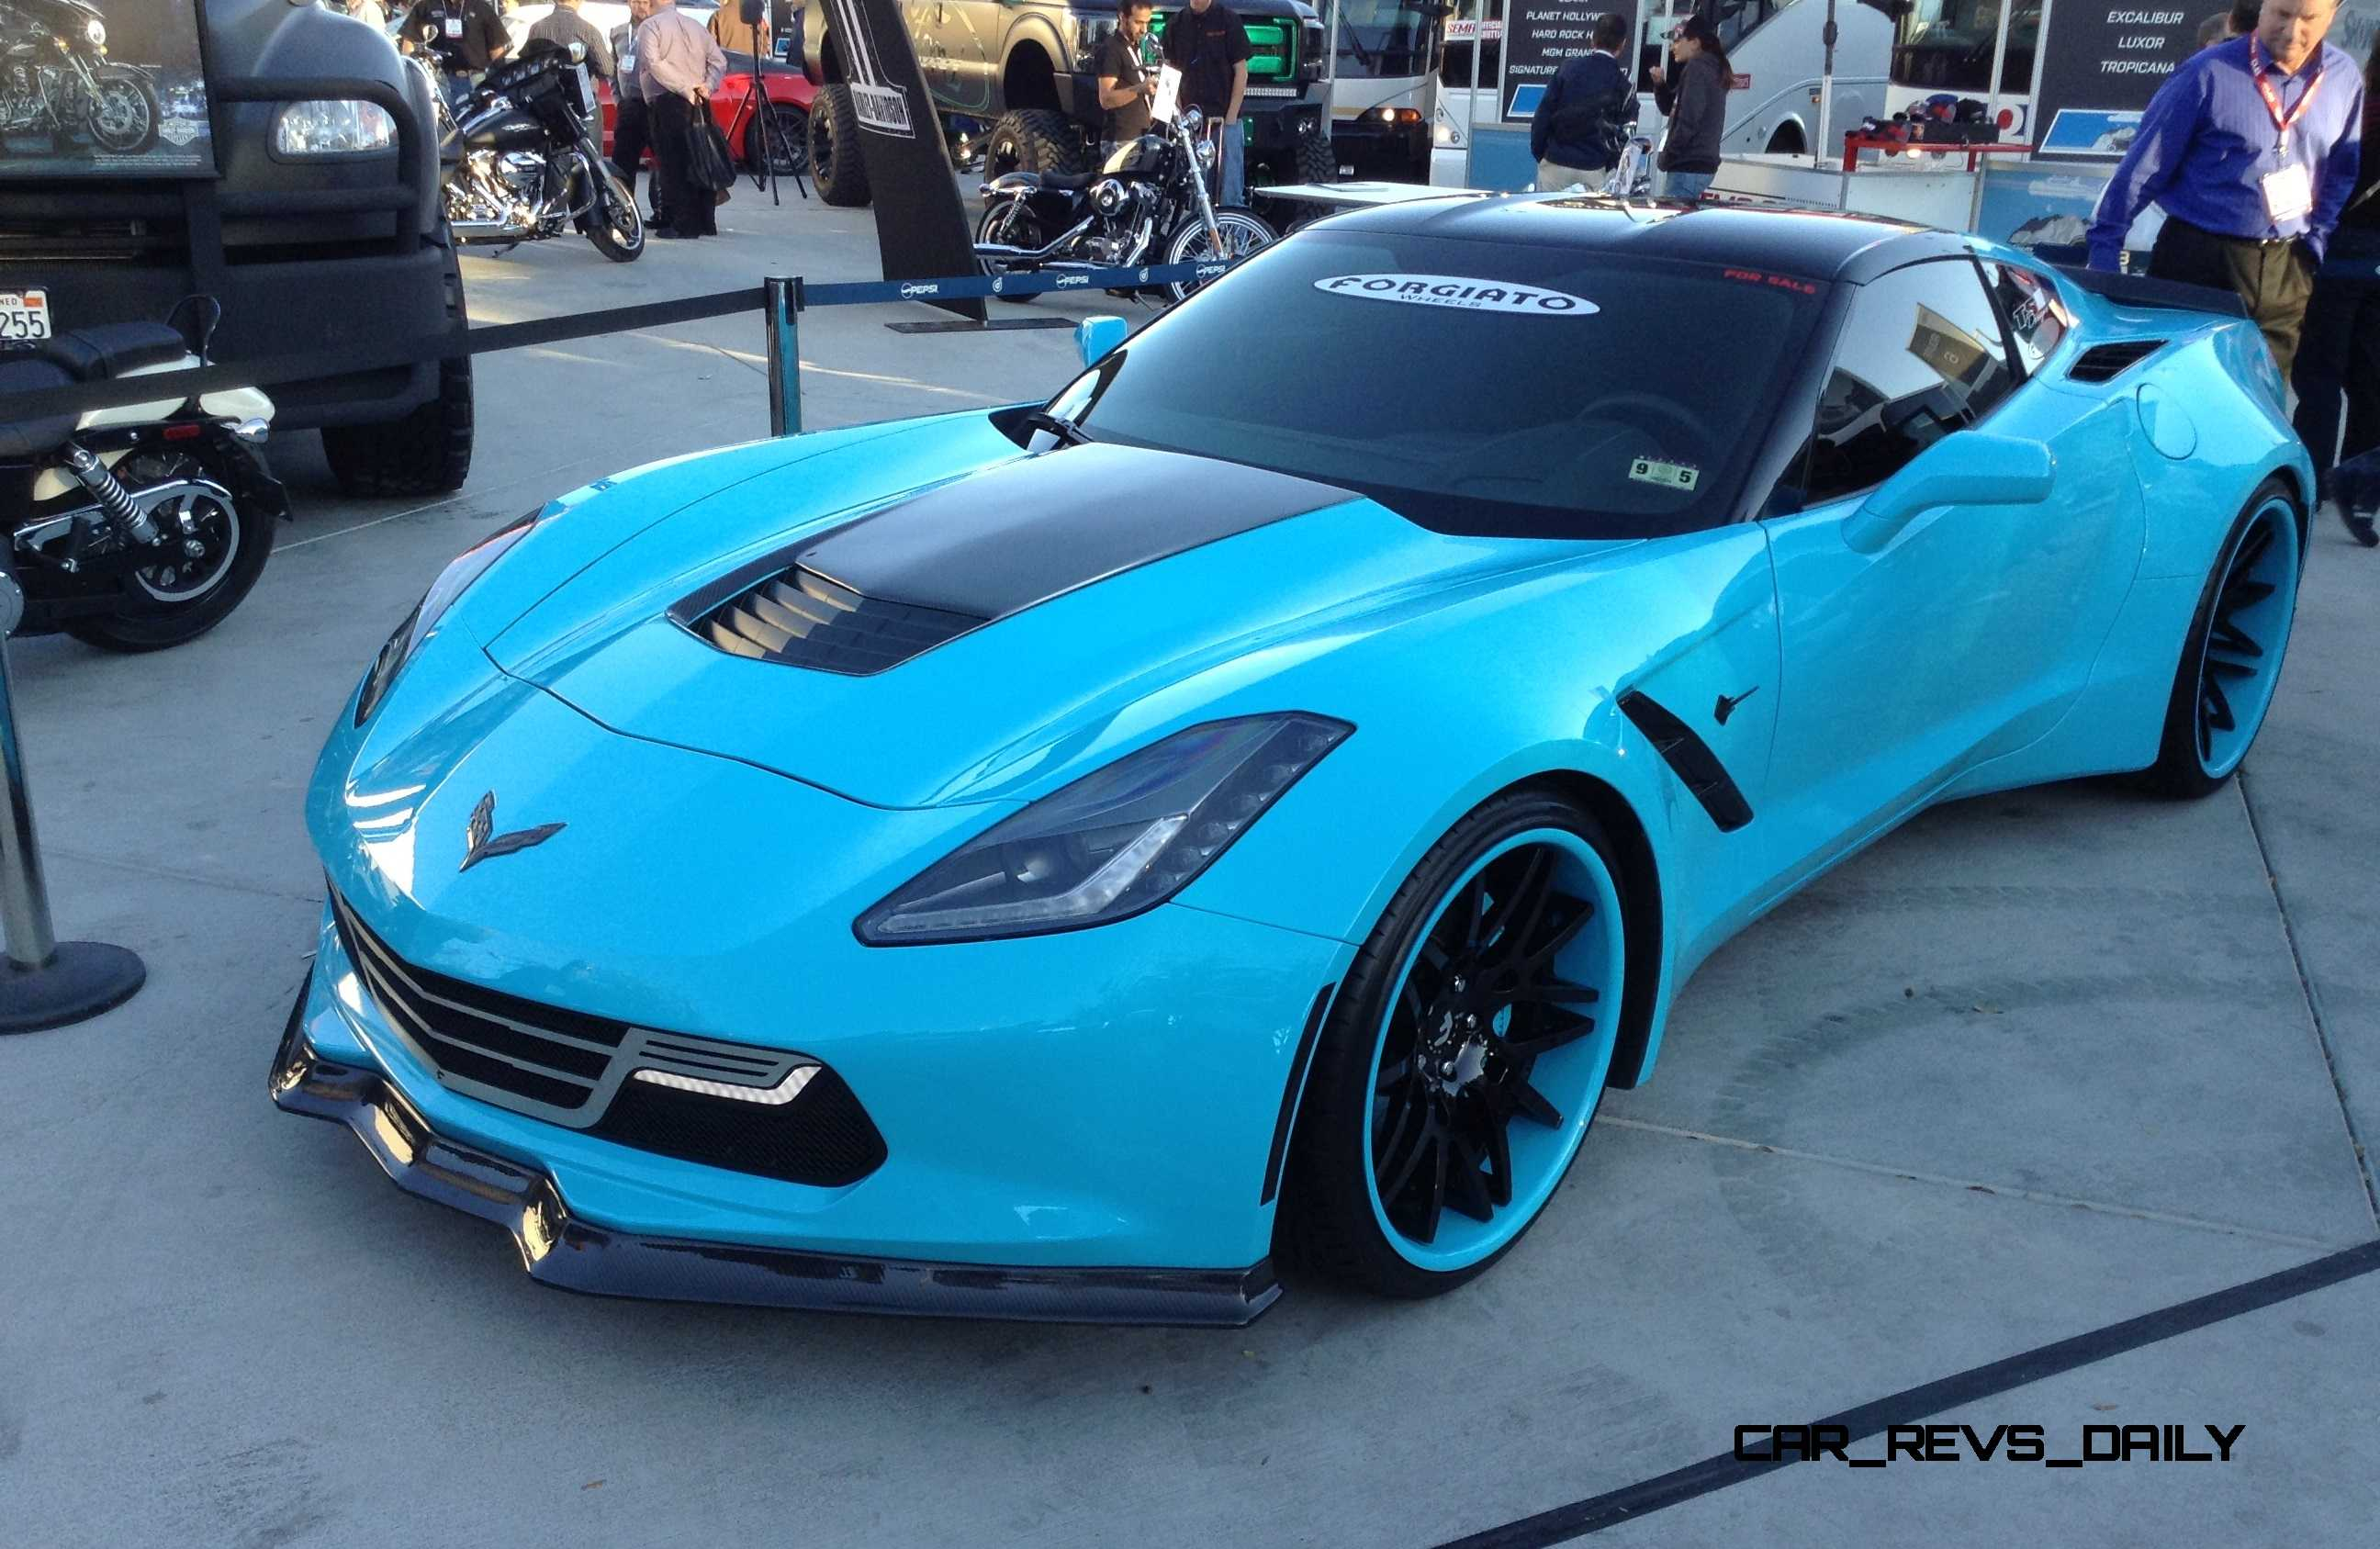 Best of SEMA 2014 - FORGIATO Wheels + Now Selling 3 Corvette C7 Widebody Demo Cars!